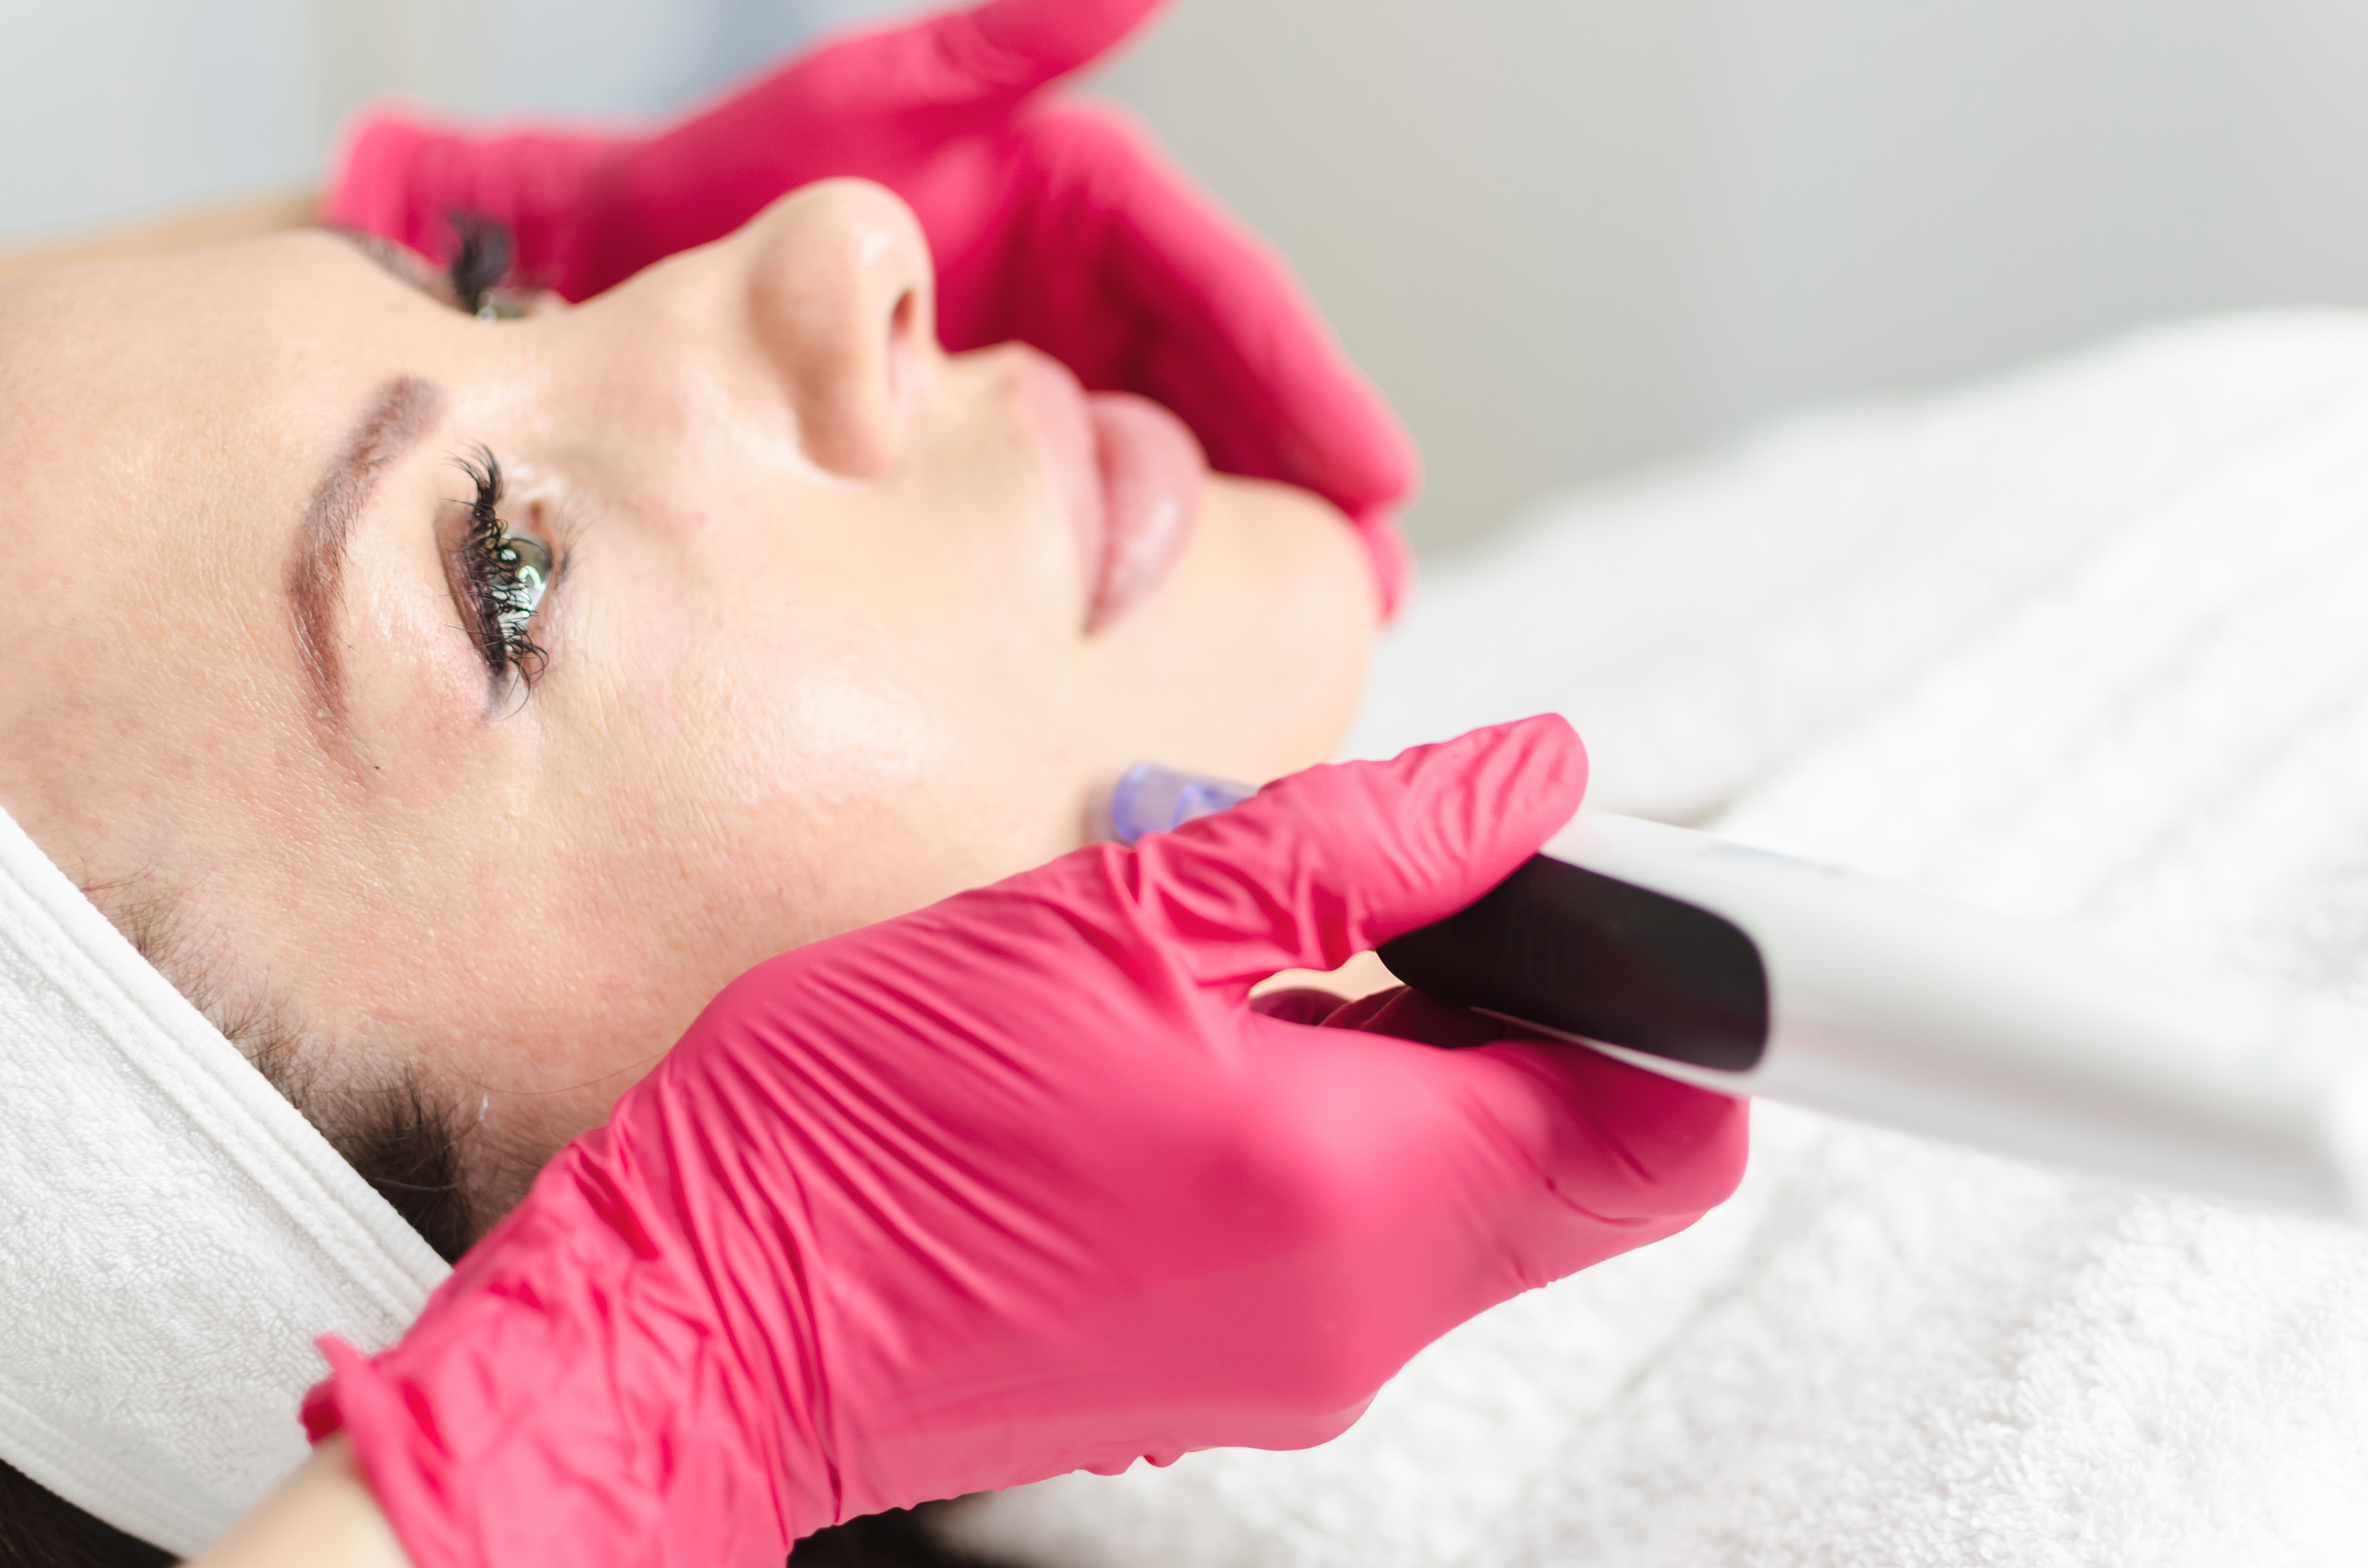 Mesotherapy, Microneedling